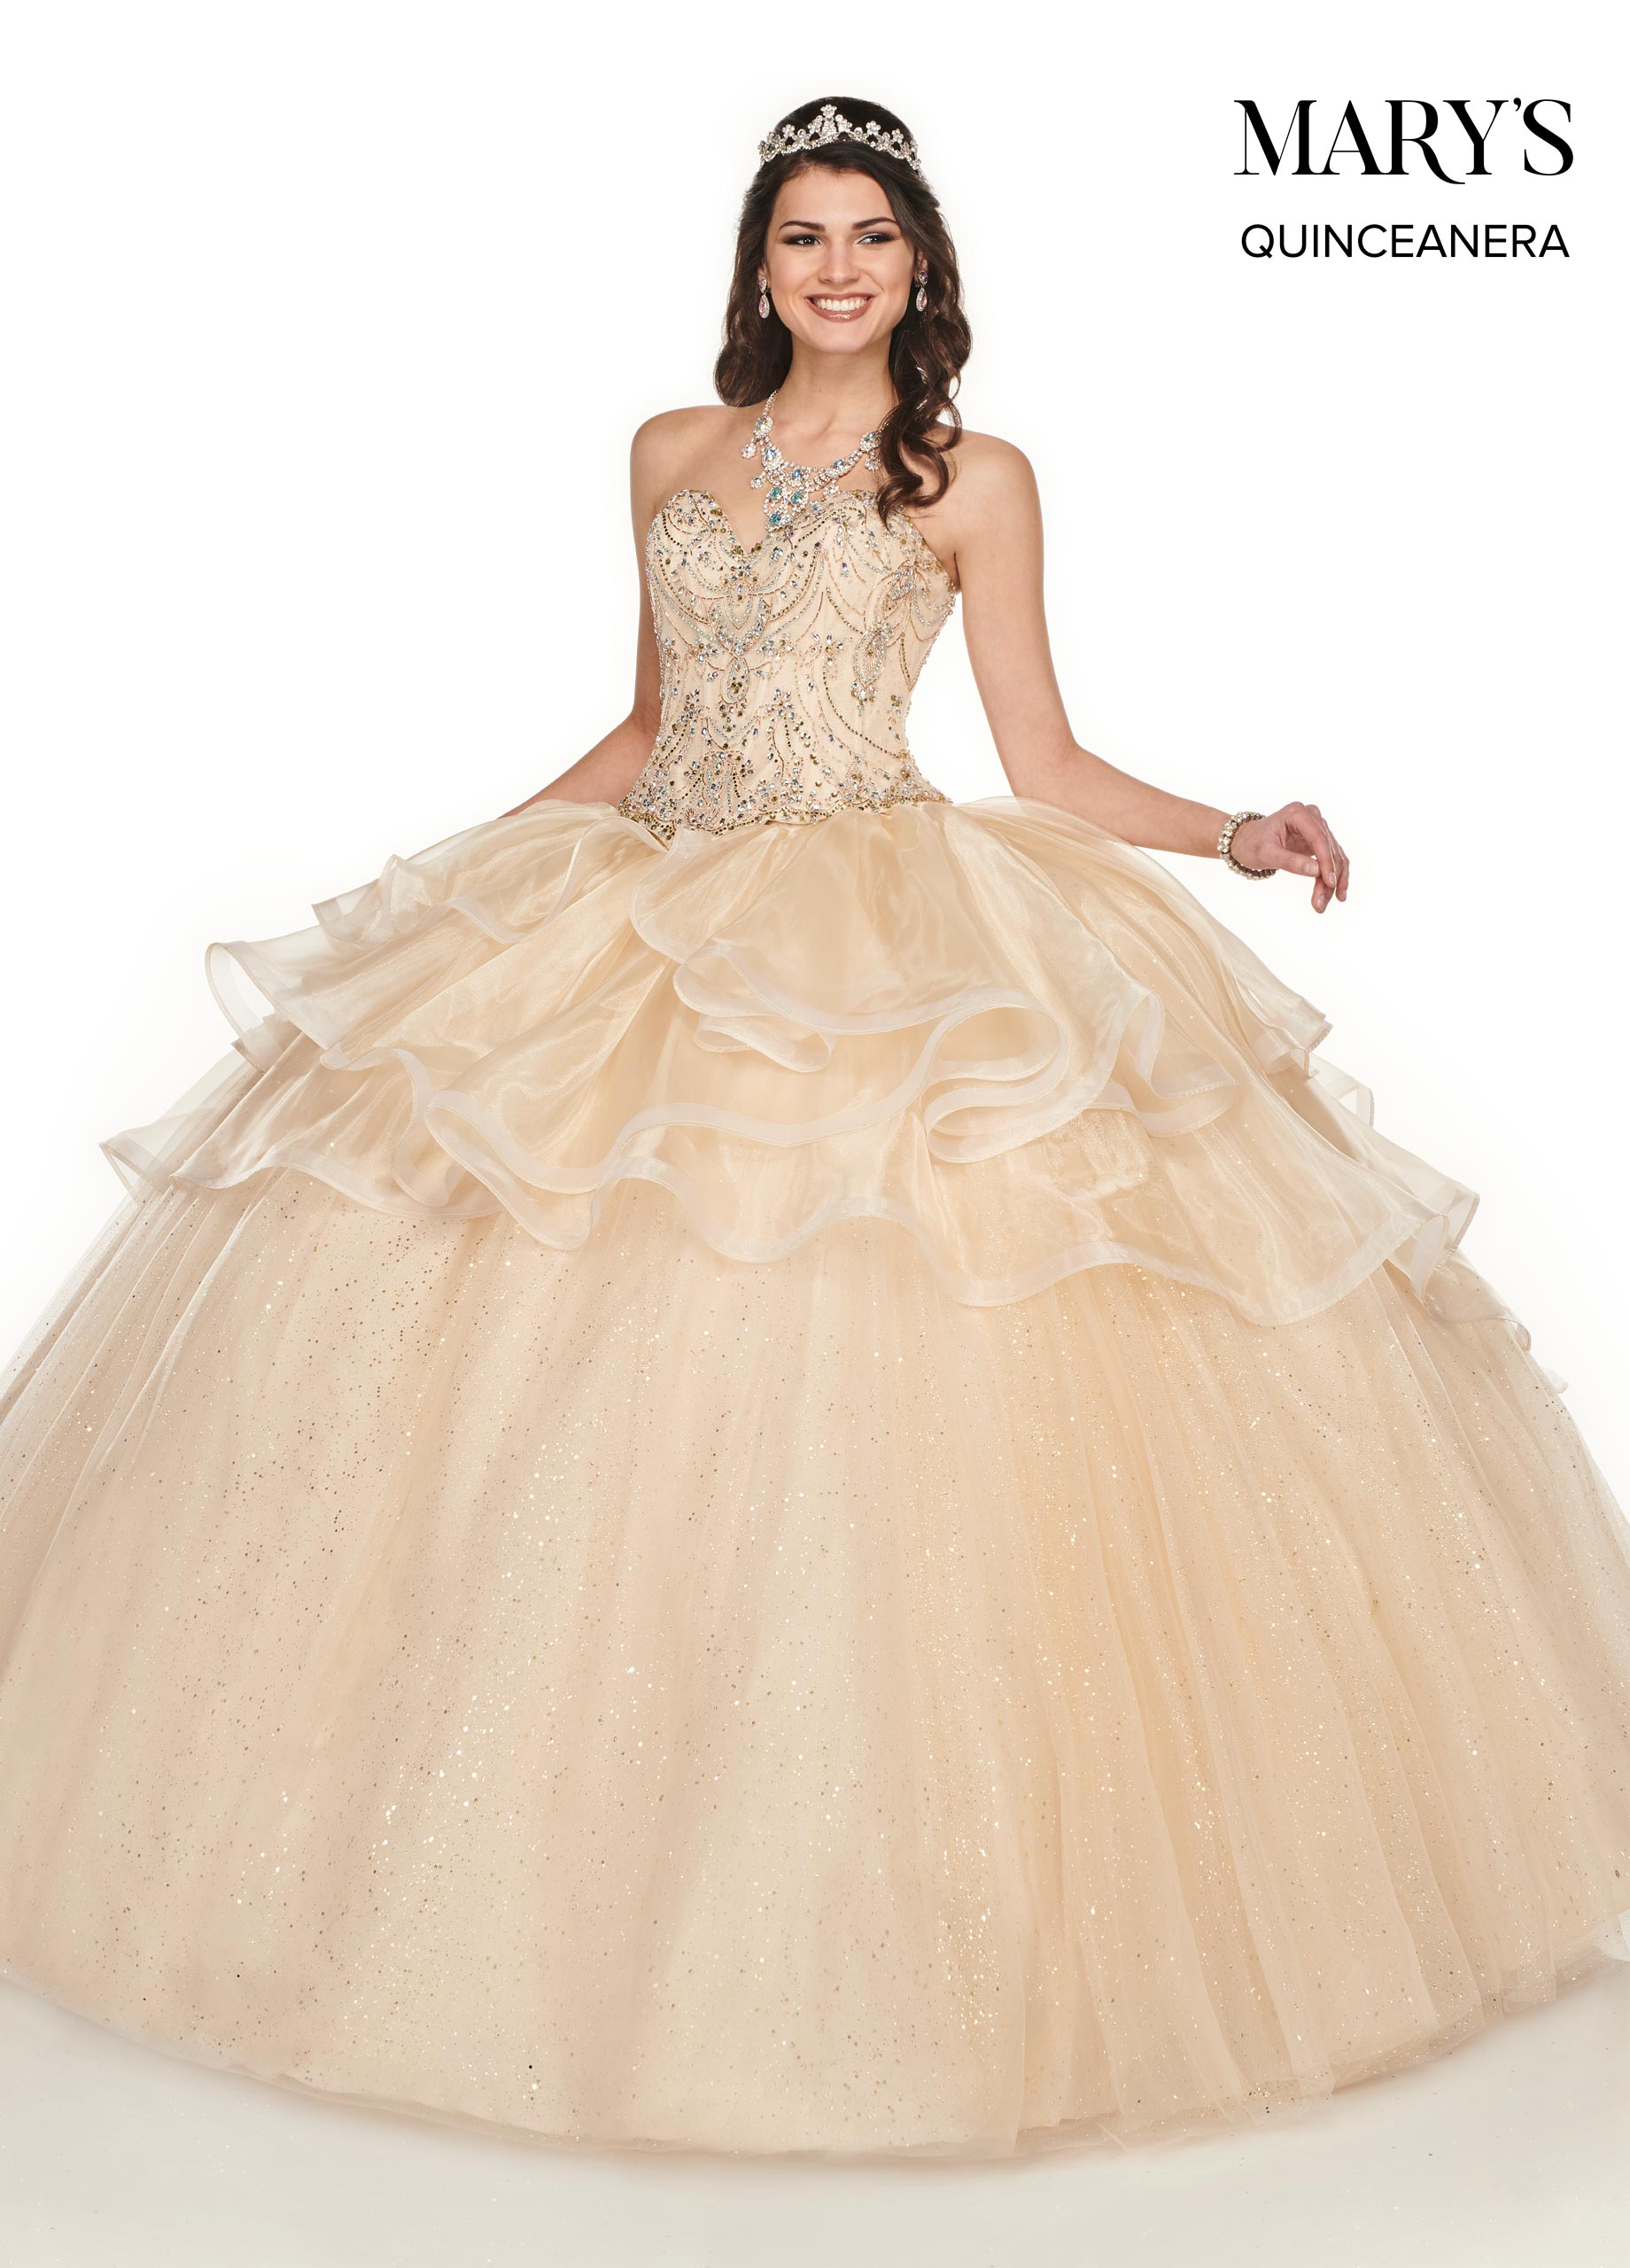 Marys Quinceanera Dresses | Mary's Quinceanera | Style - MQ2073